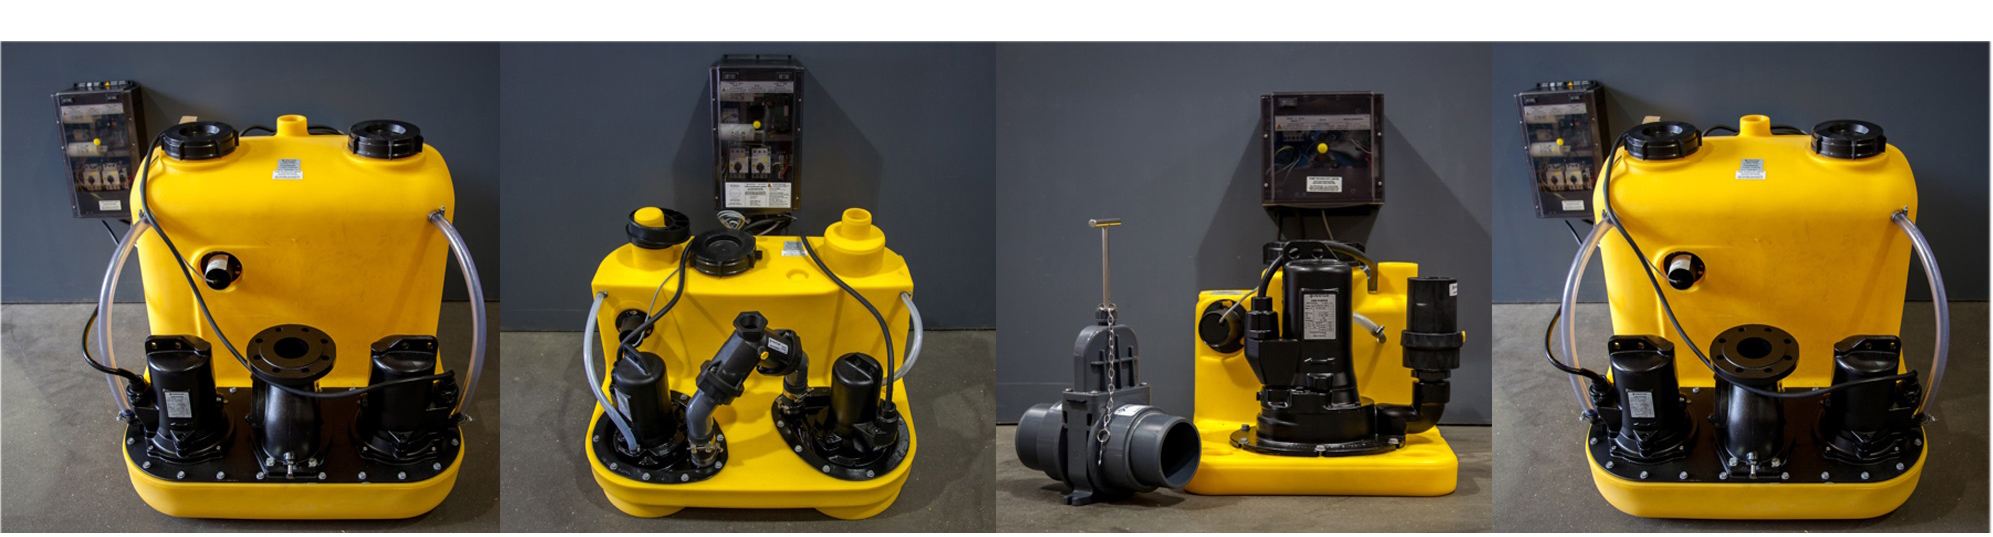 Commercial Sewage Pumping Systems